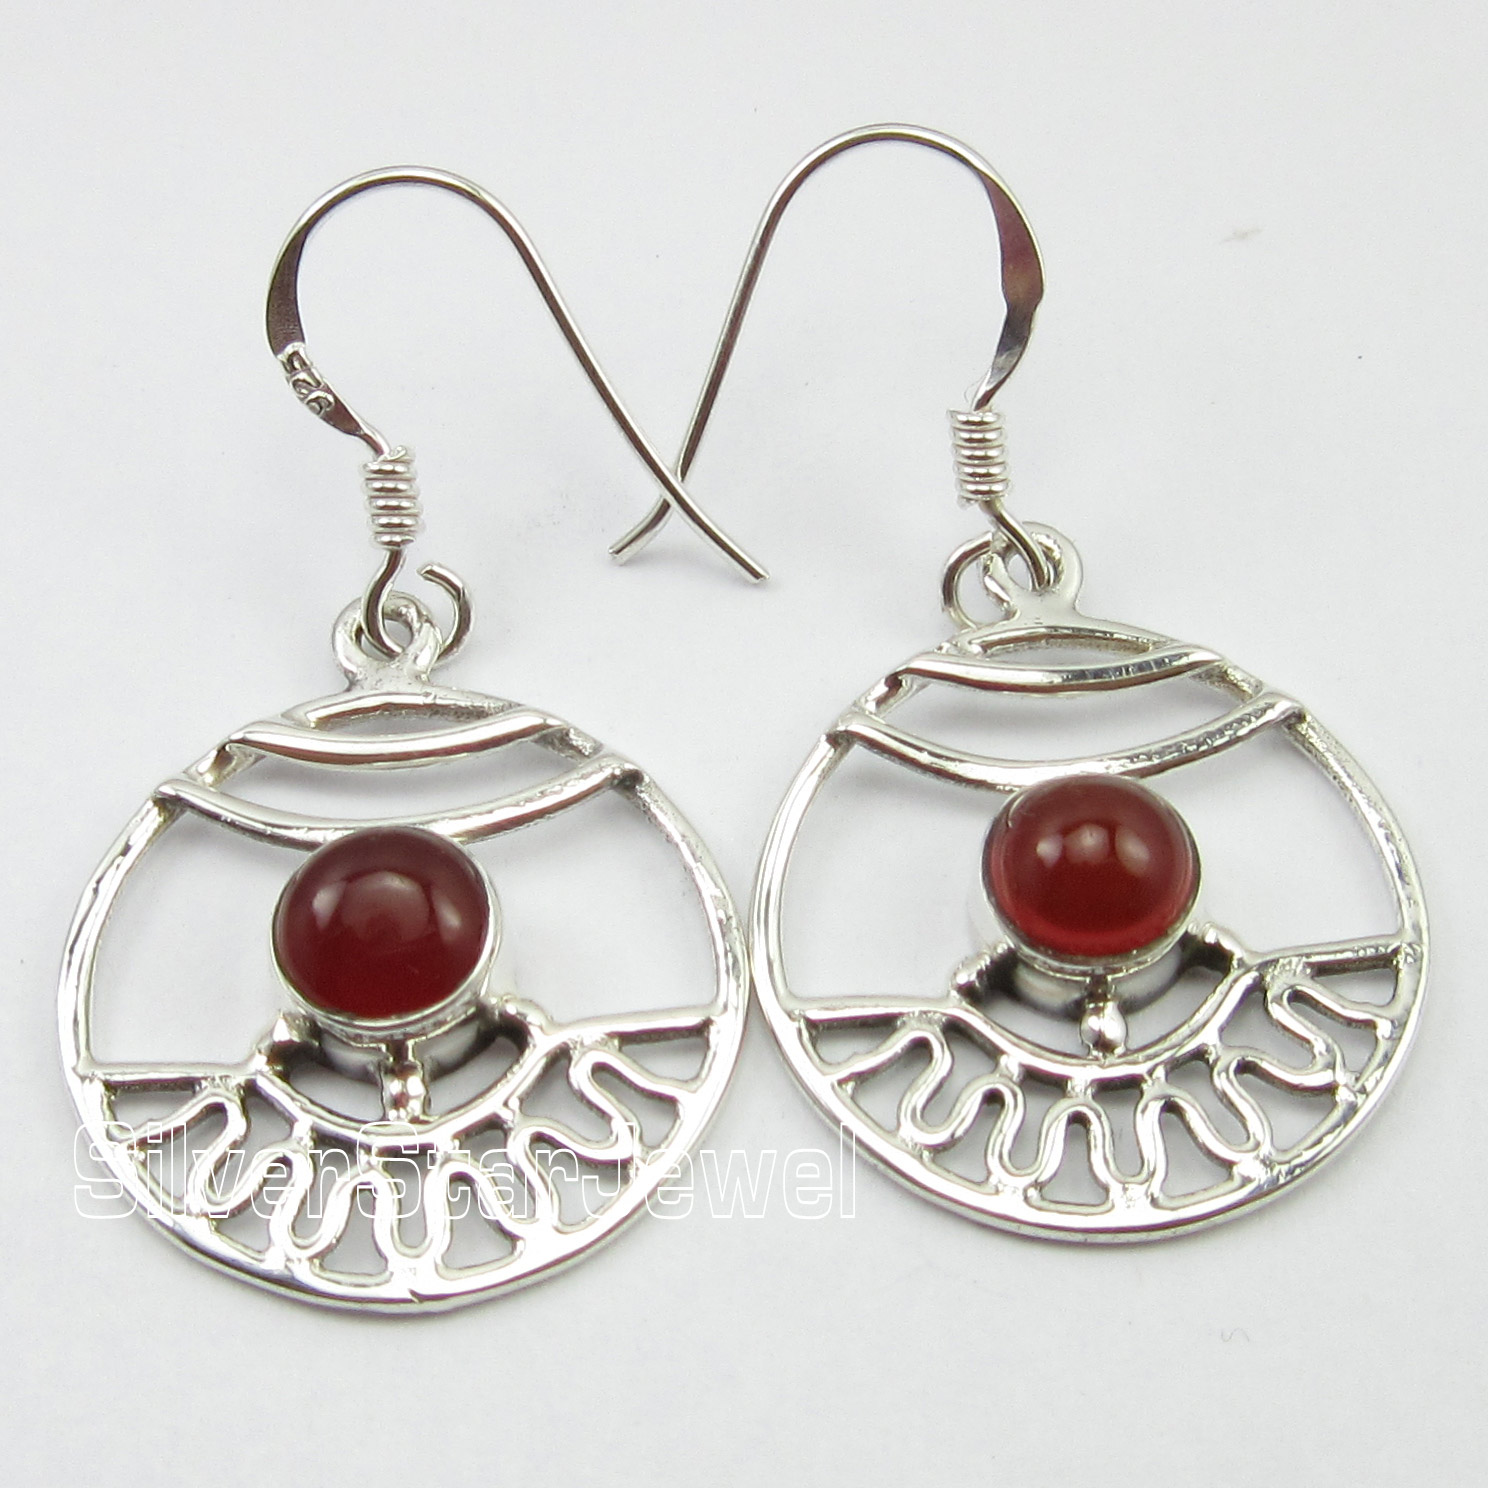 bali carnelian earrings pin majesty novica handcrafted products